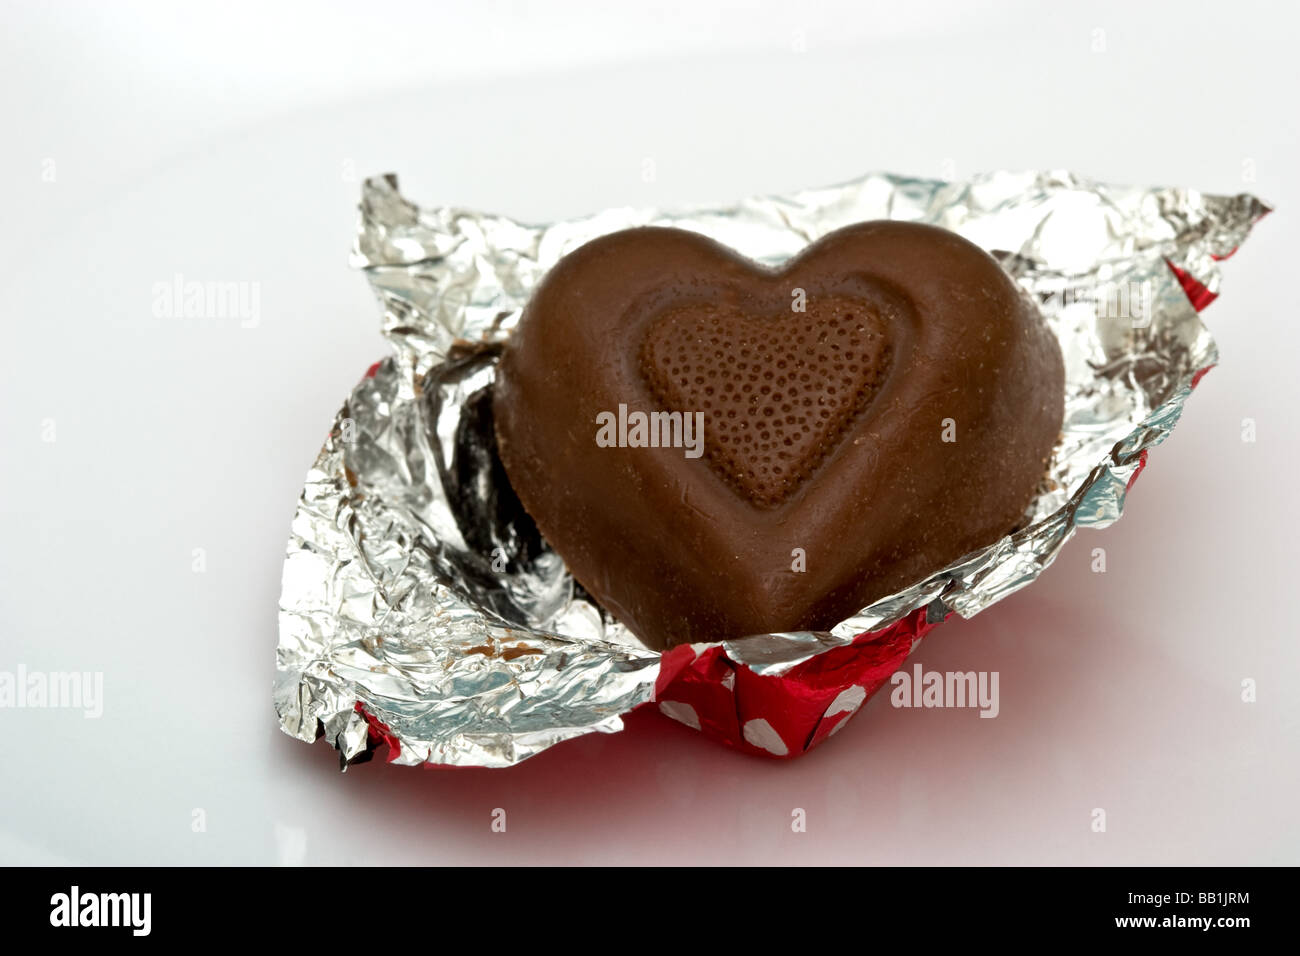 Single heart shaped chocolate candy in aluminum foil wrapping - Stock Image